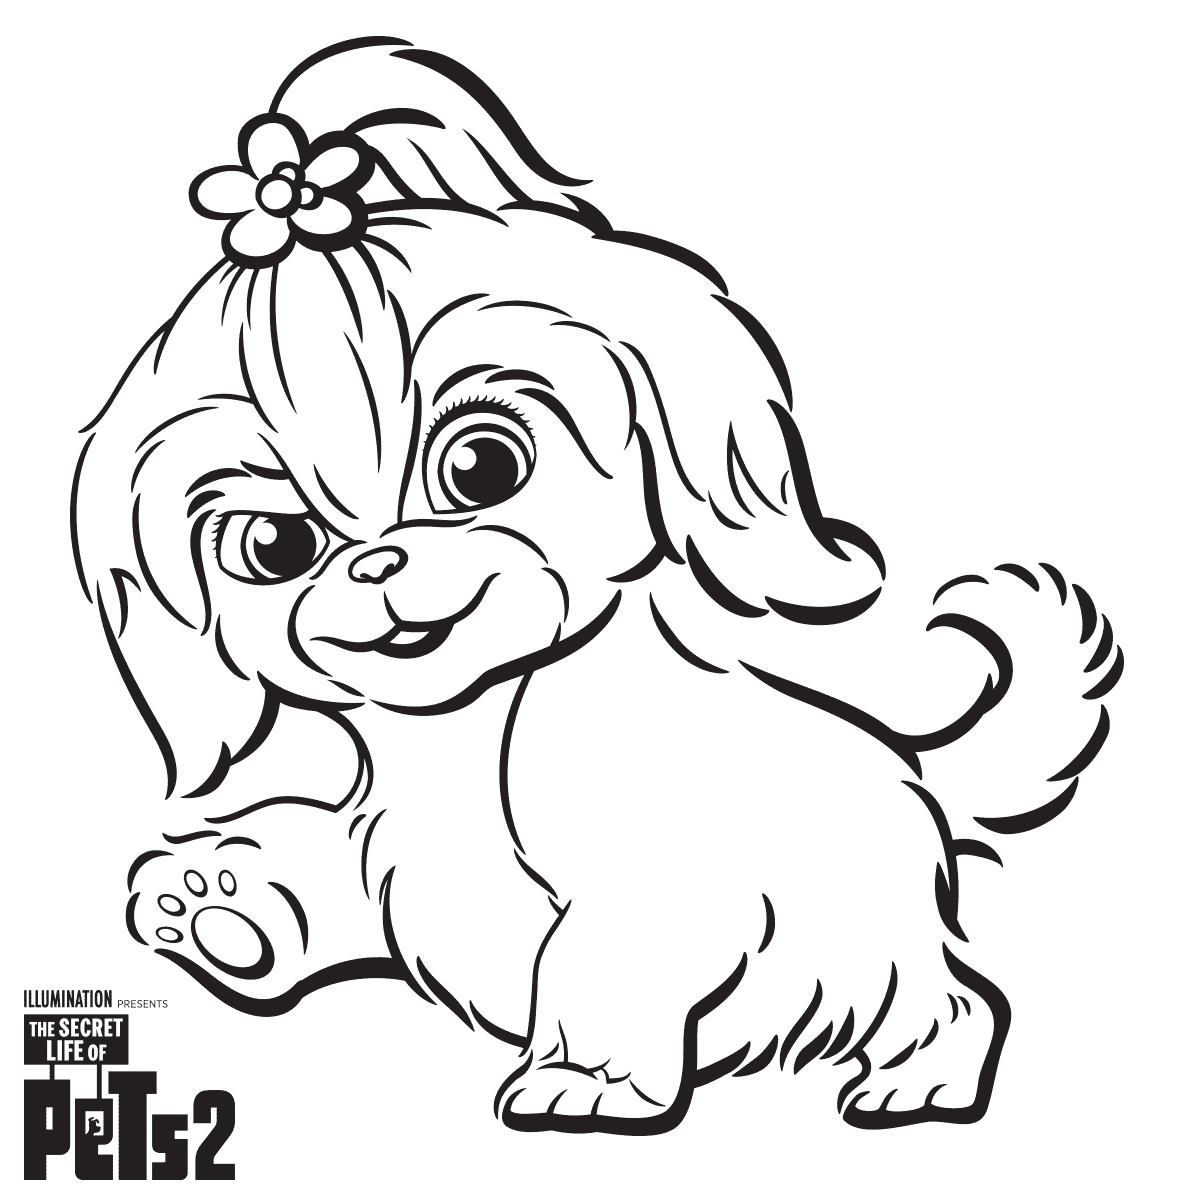 Daisy from The Secret Life Of Pets 2 Coloring Sheet